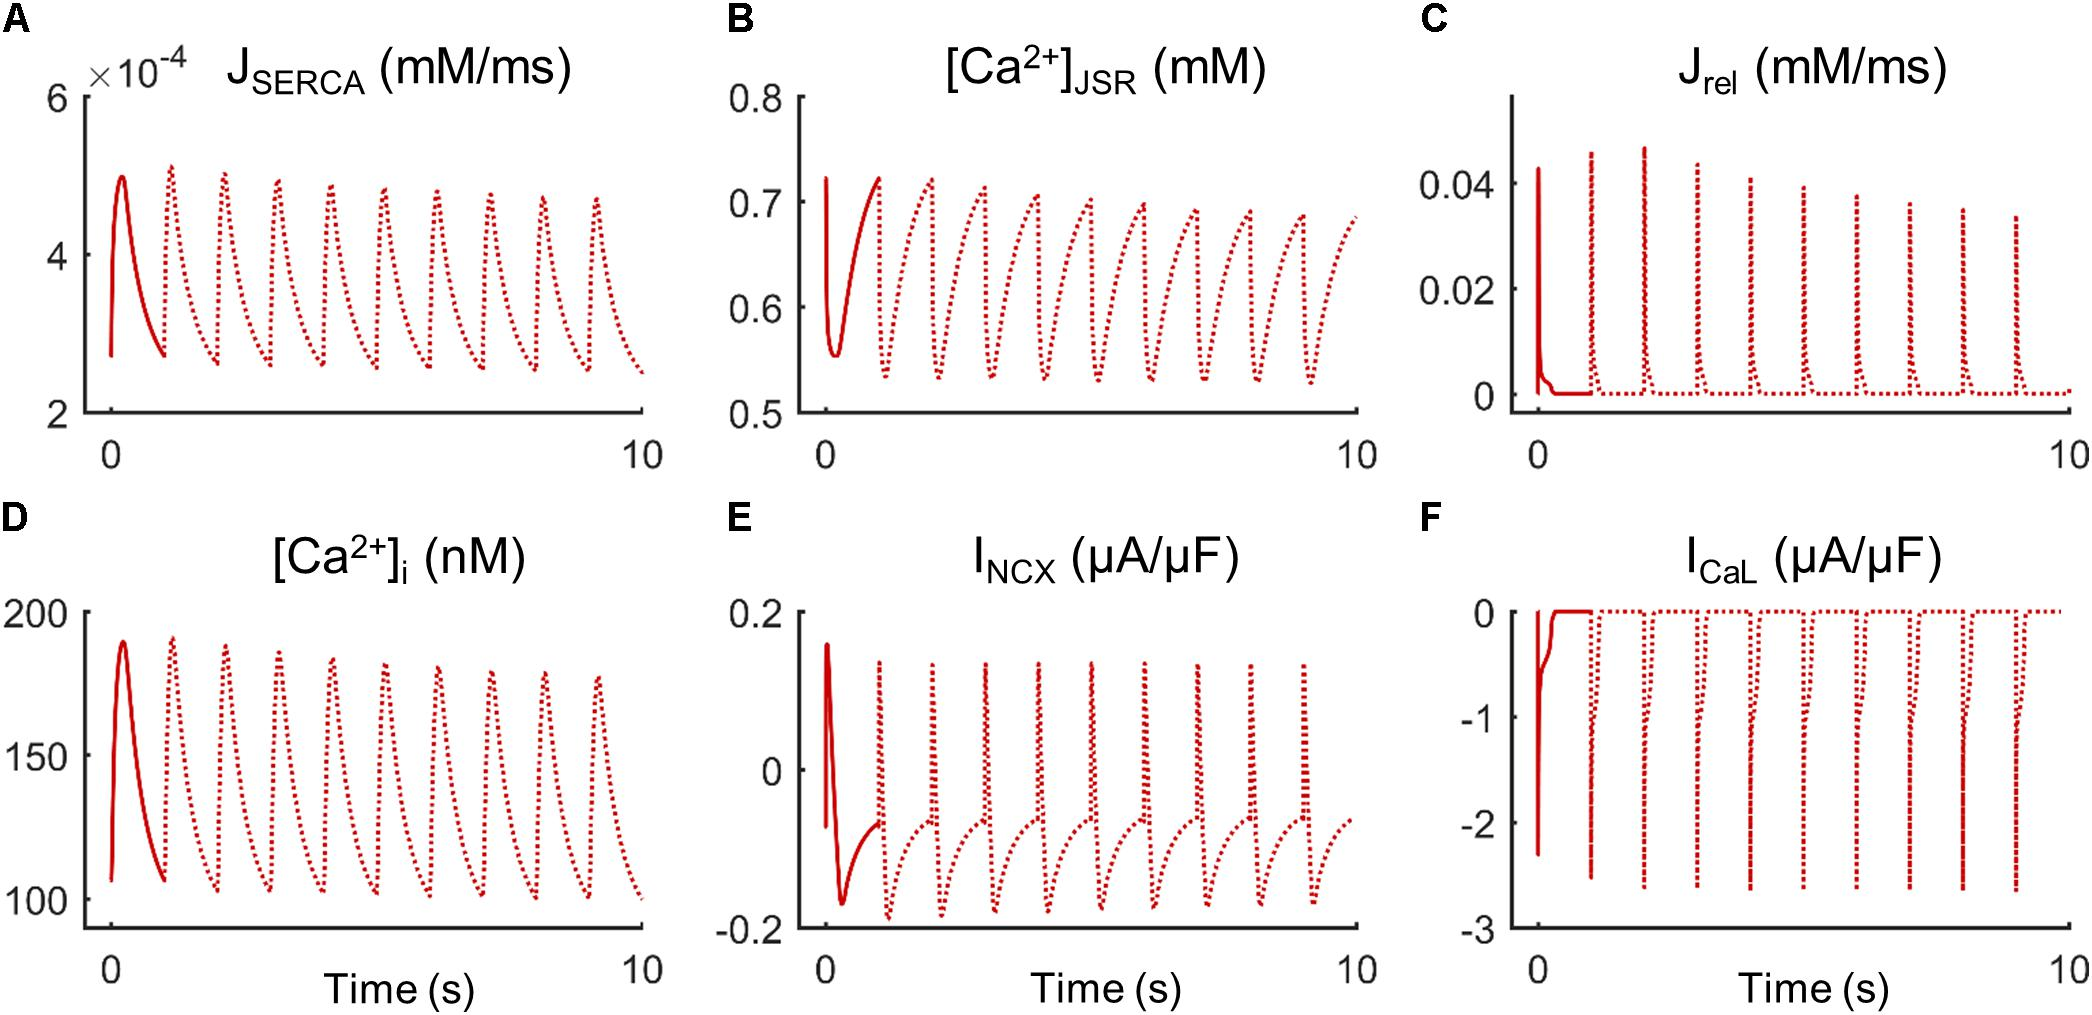 Frontiers | Ca2+ Cycling Impairment in Heart Failure Is